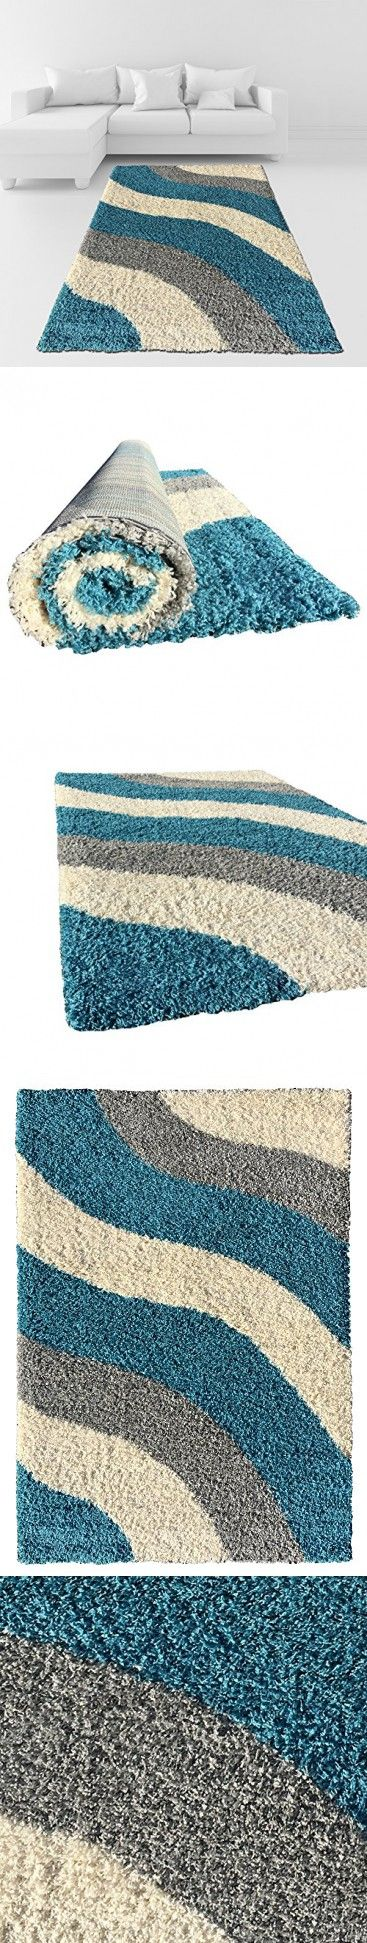 Soft Shag Area Rug 3x5 Geometric Striped Turquoise Grey Shaggy Rug - Contemporary Area Rugs for Living Room Bedroom Kitchen Decorative Modern Shaggy Rugs